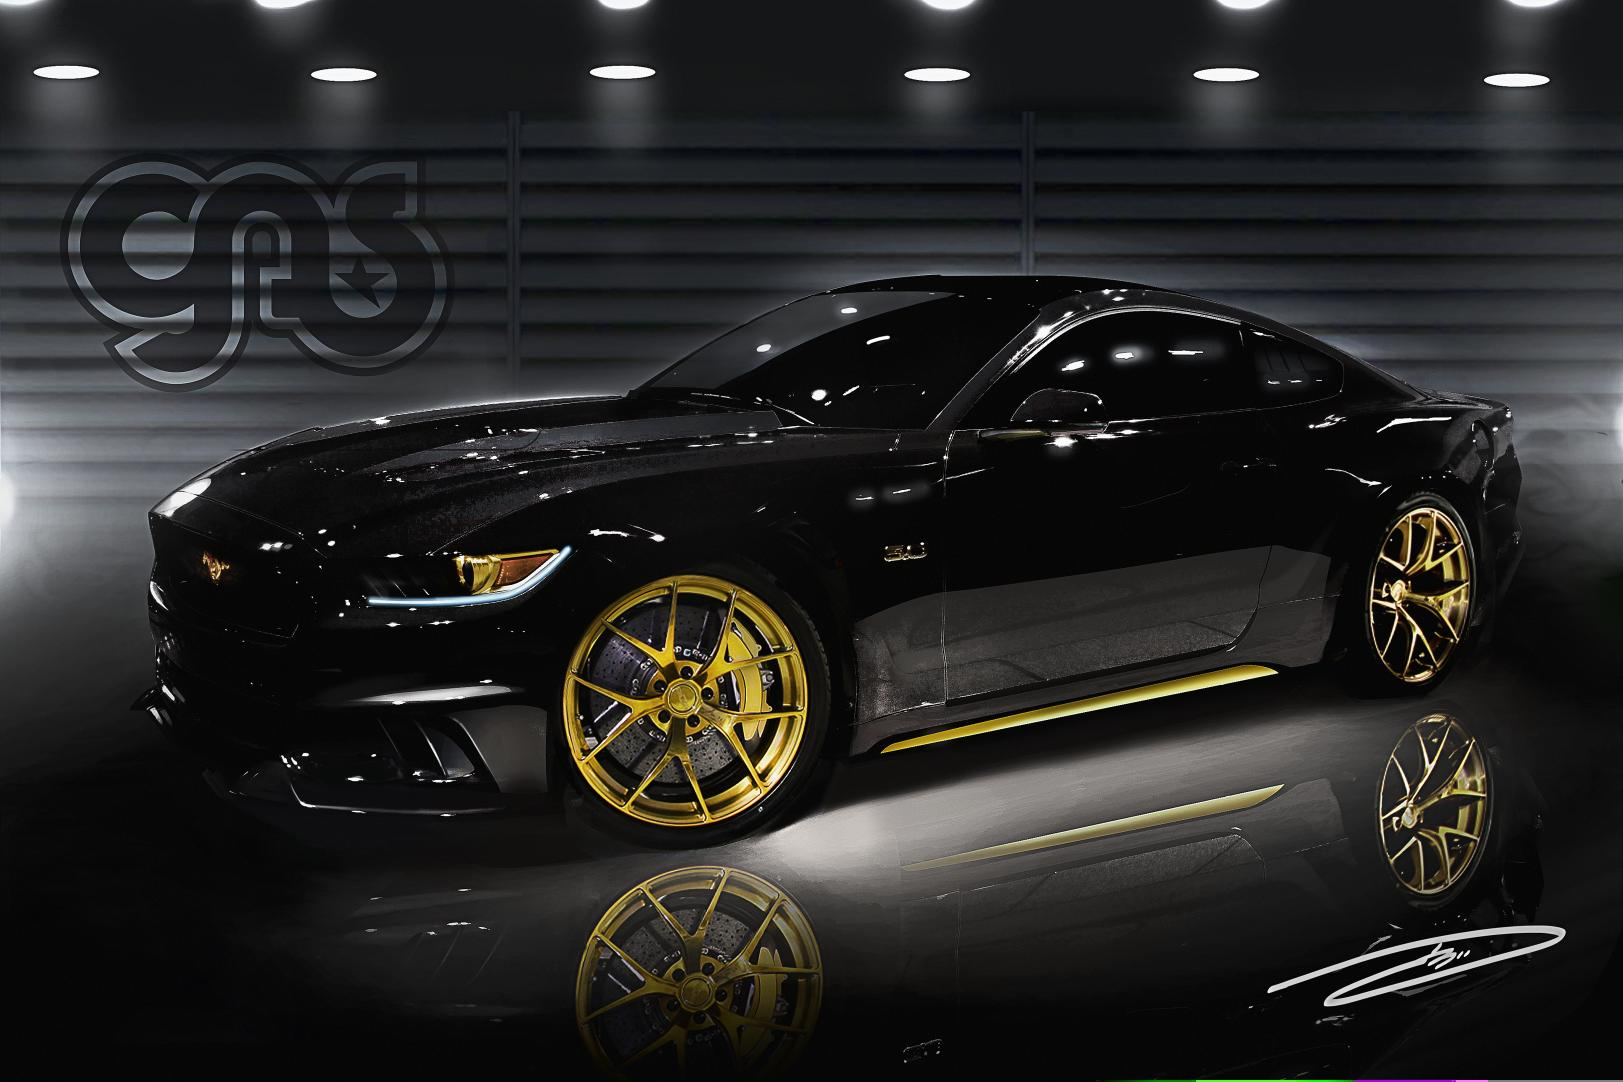 2015 Ford Mustang to Take SEMA by Storm With Over 12 Custom Vehicles - autoevolution